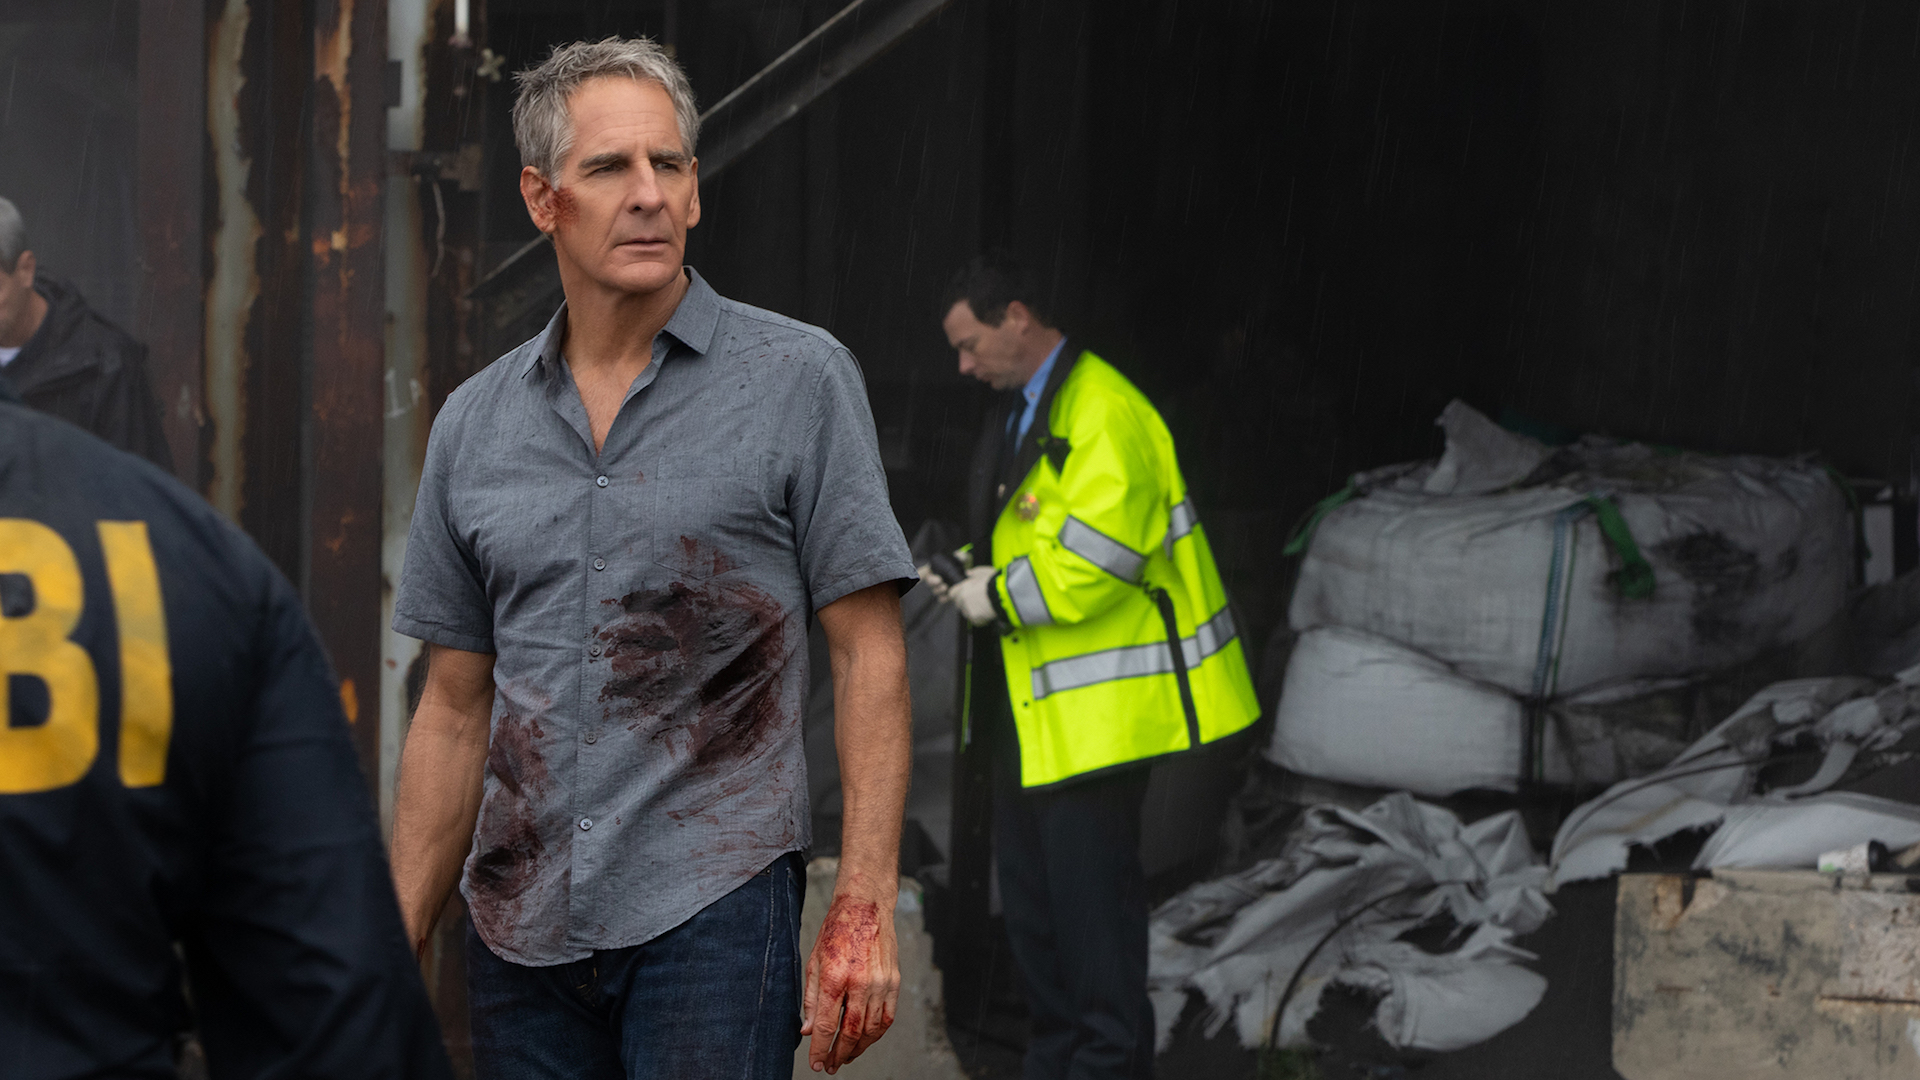 NCIS: New Orleans tries to avenge the past in